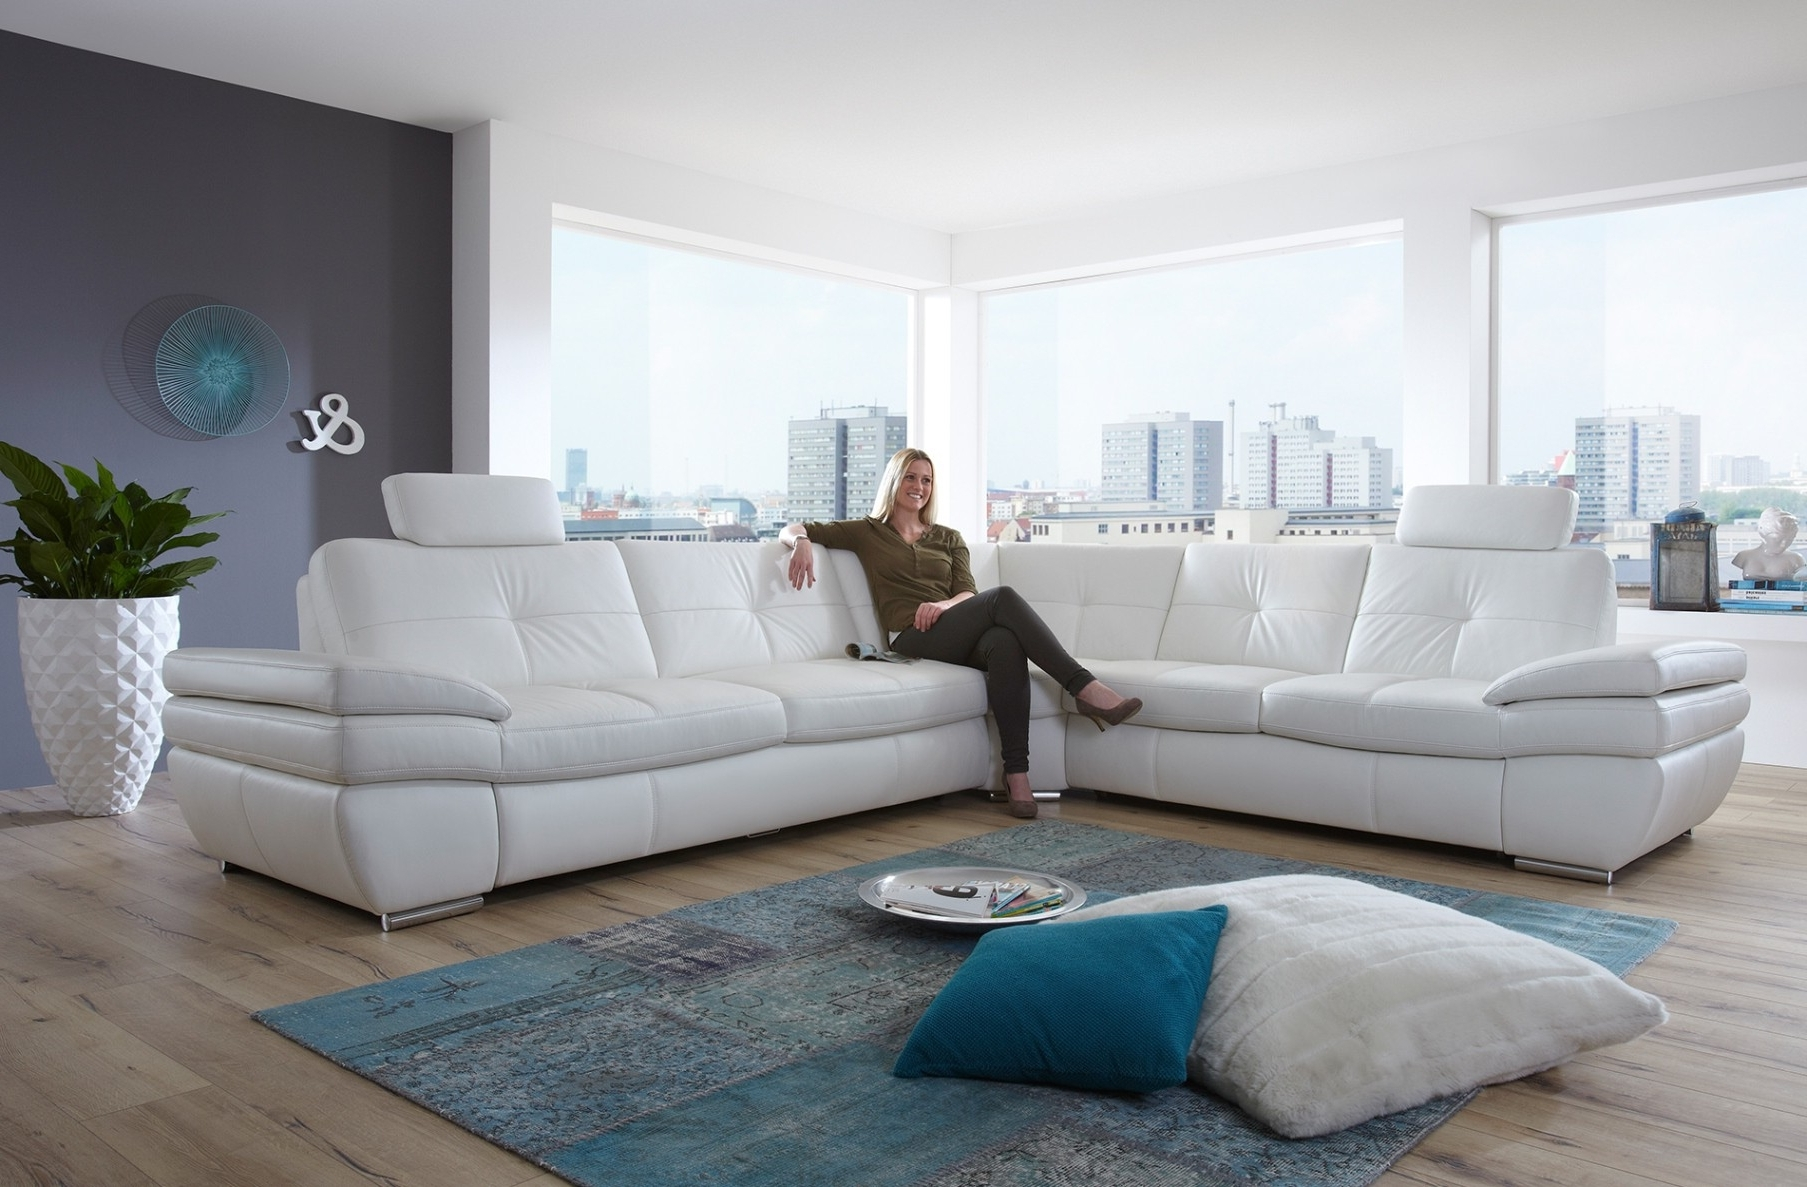 Everett Wa Sectional Sofas In Favorite Furniture : Sectional Sleeper Sofa Queen Has One Of The Best Kind (View 3 of 15)